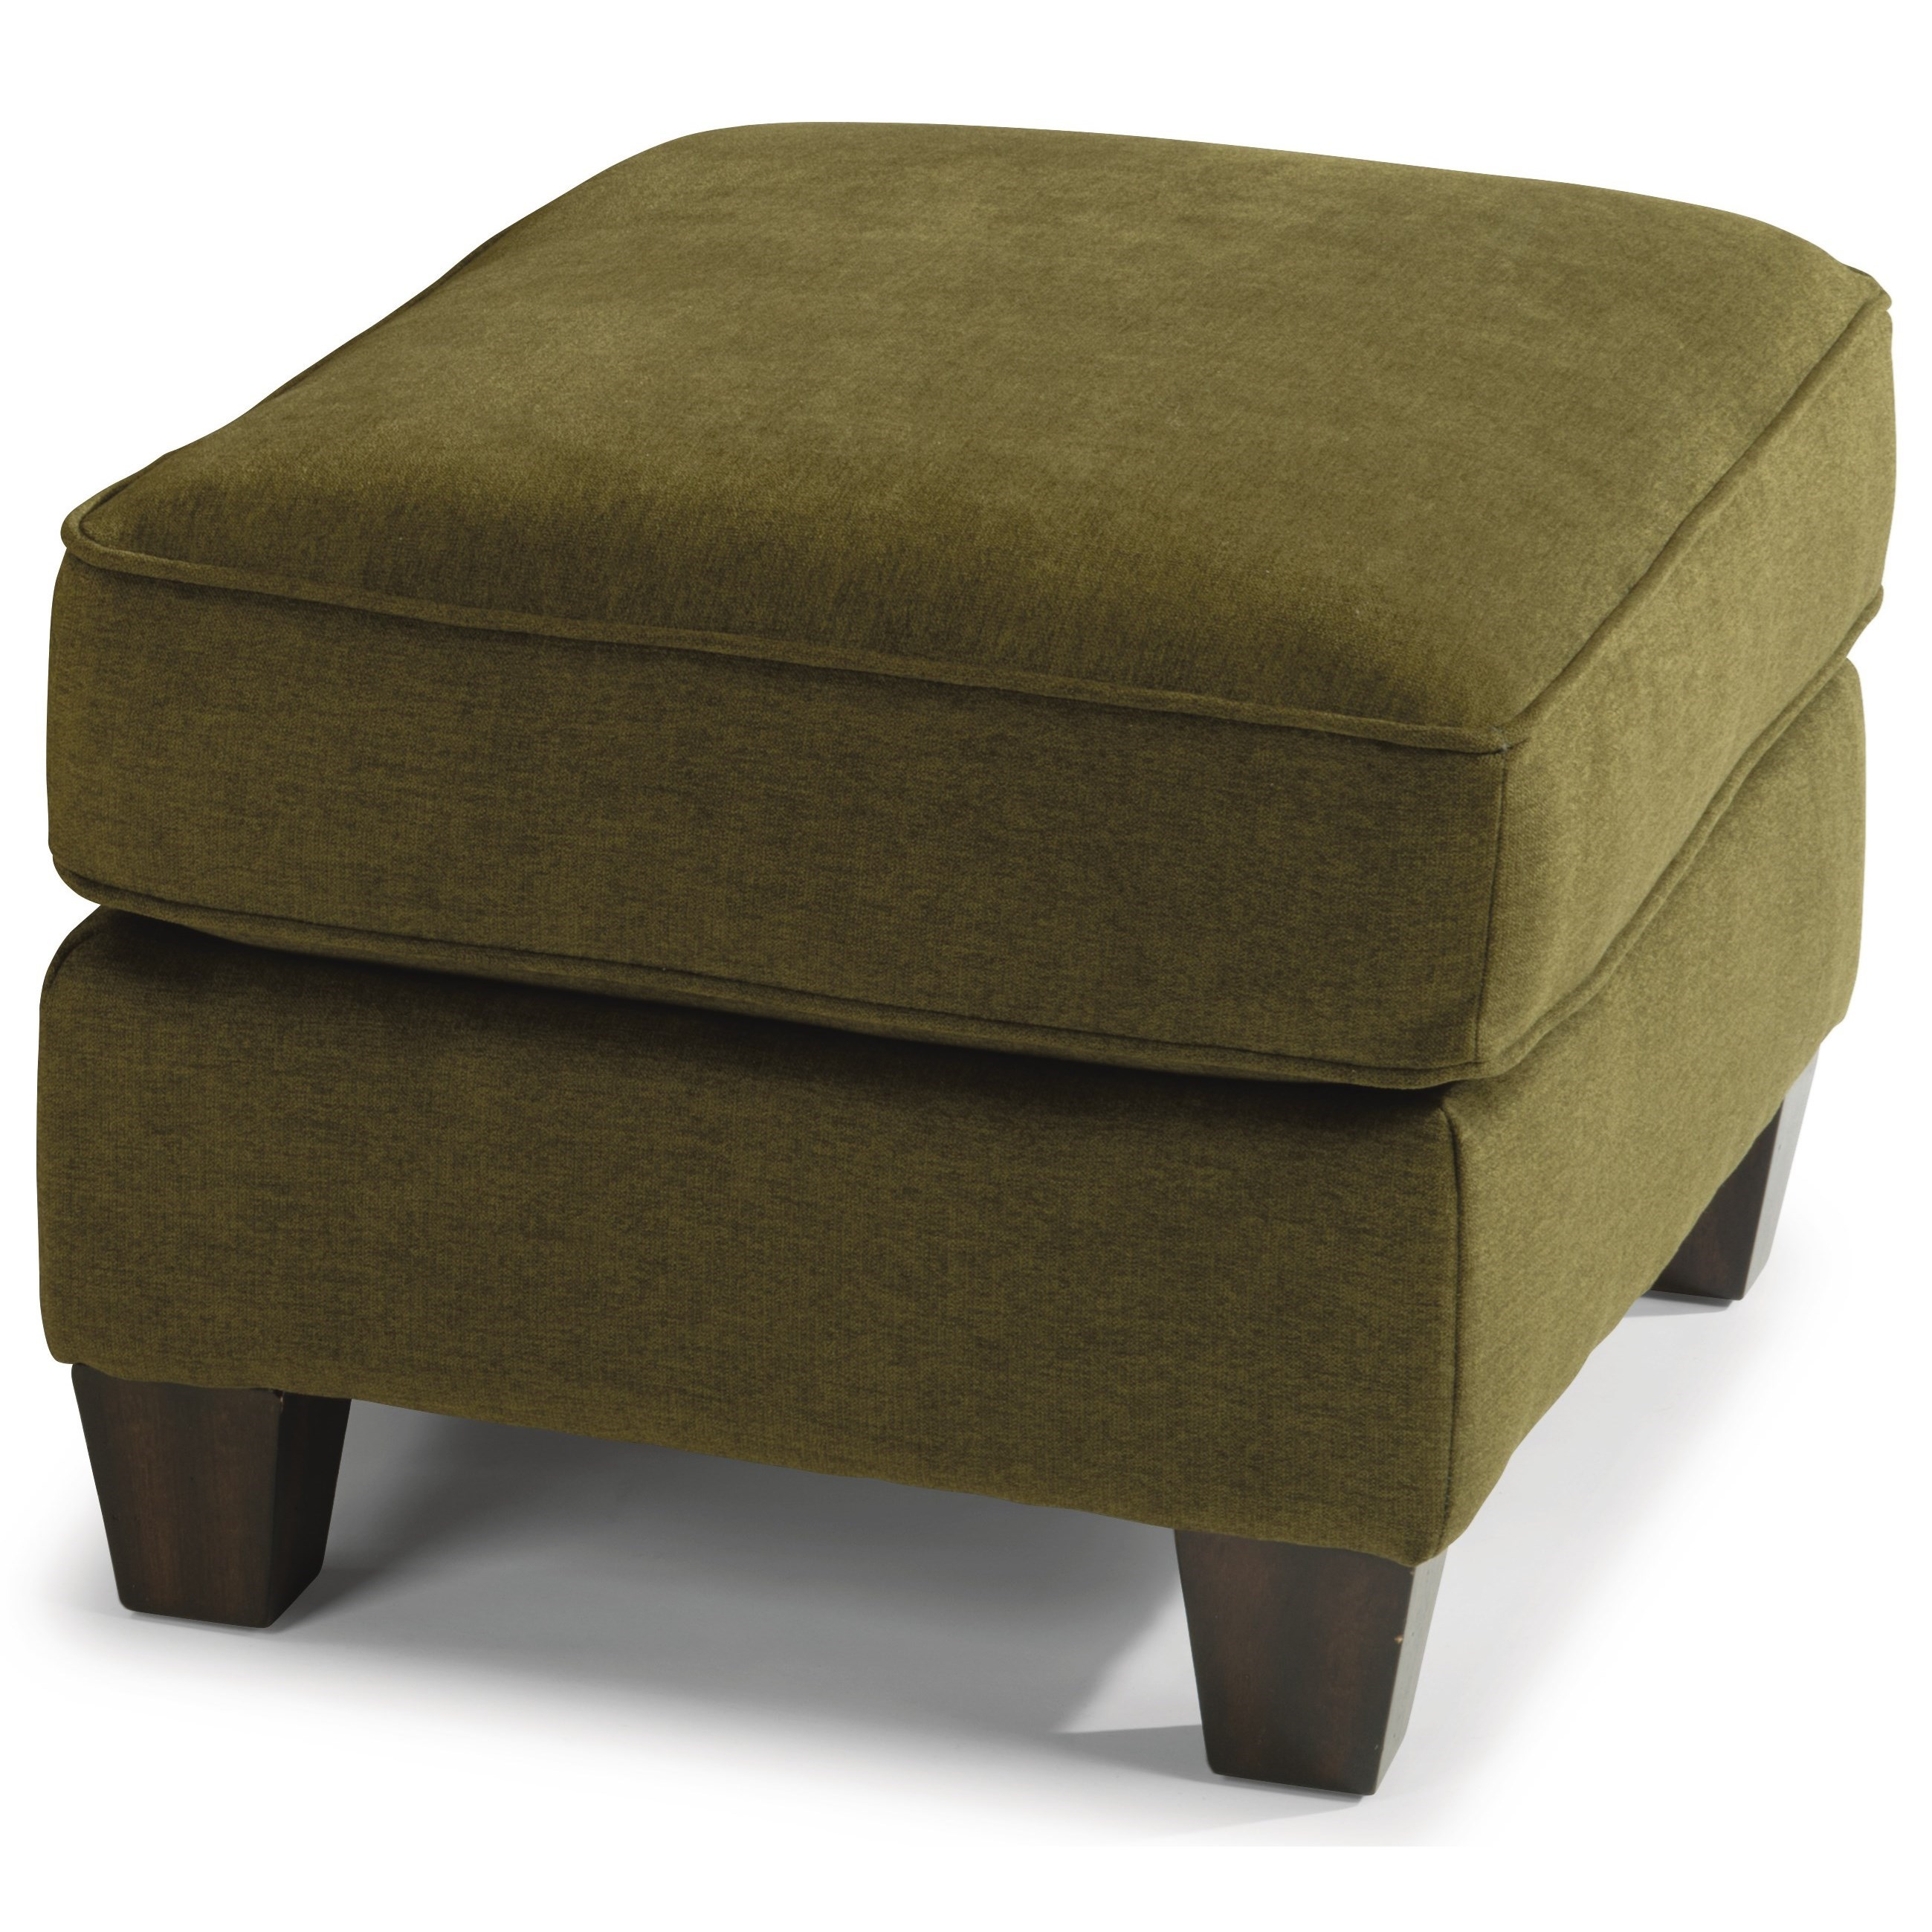 Flexsteel Atlantis Ottoman - Item Number: 5713-08-414-22